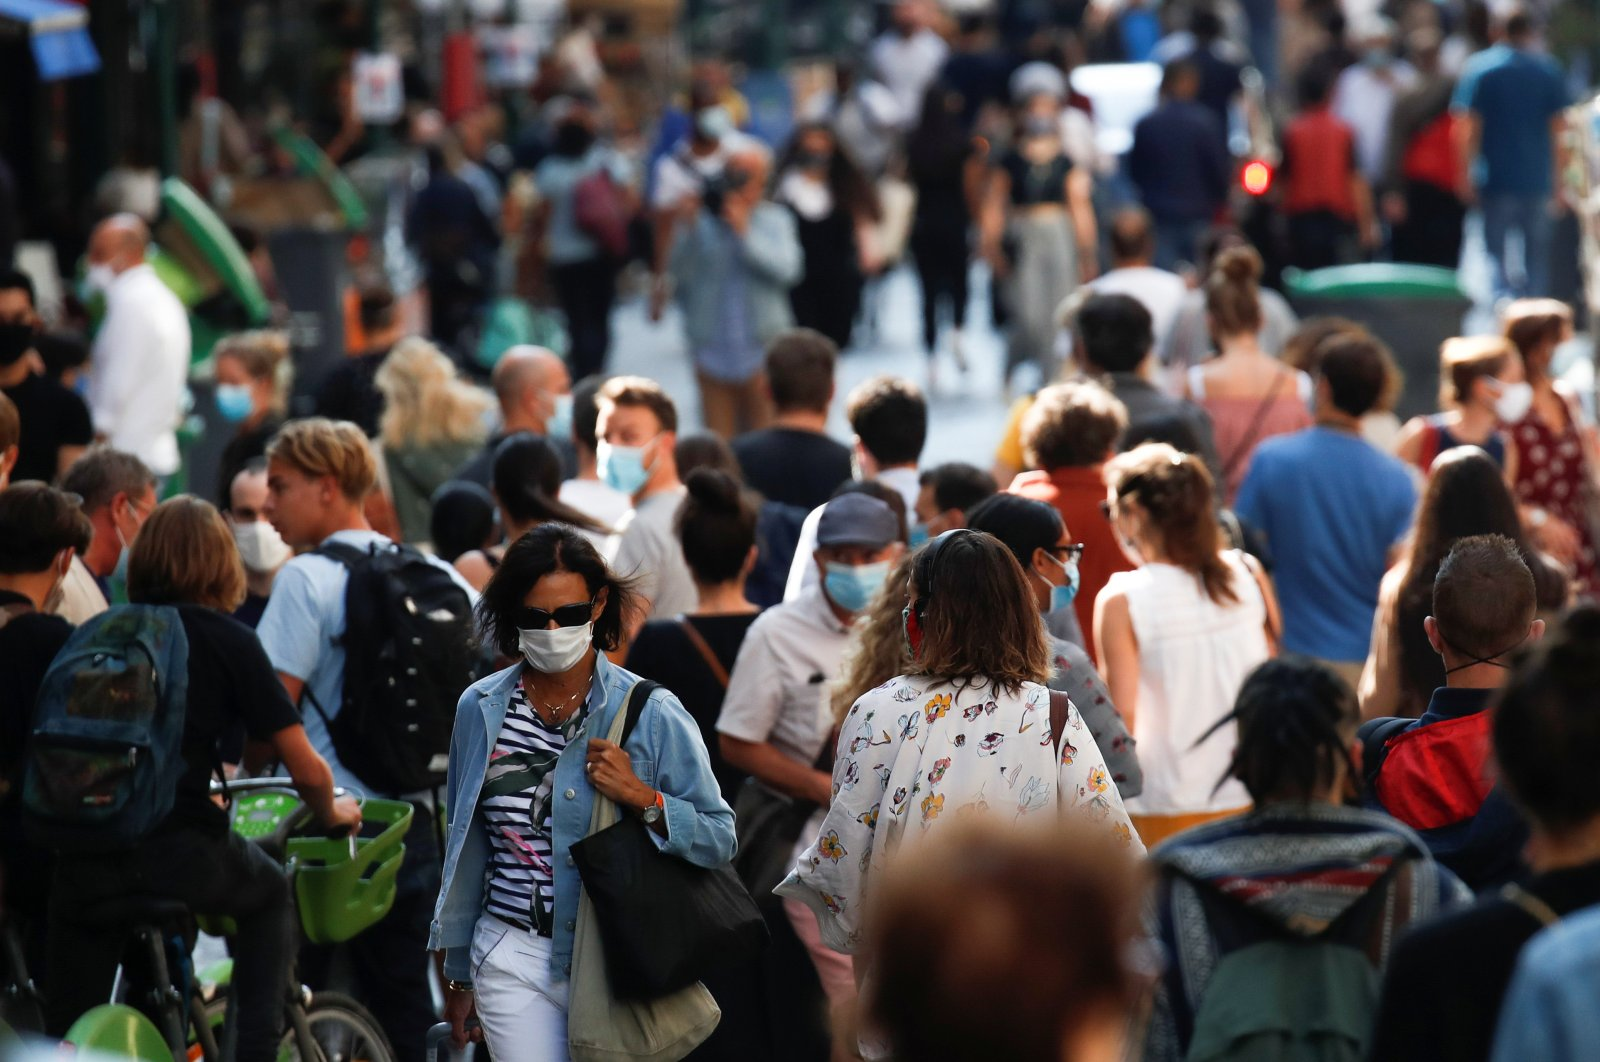 People wearing protective face masks walk in a busy street, Paris, France, Sept. 18, 2020. (Reuters Photo)